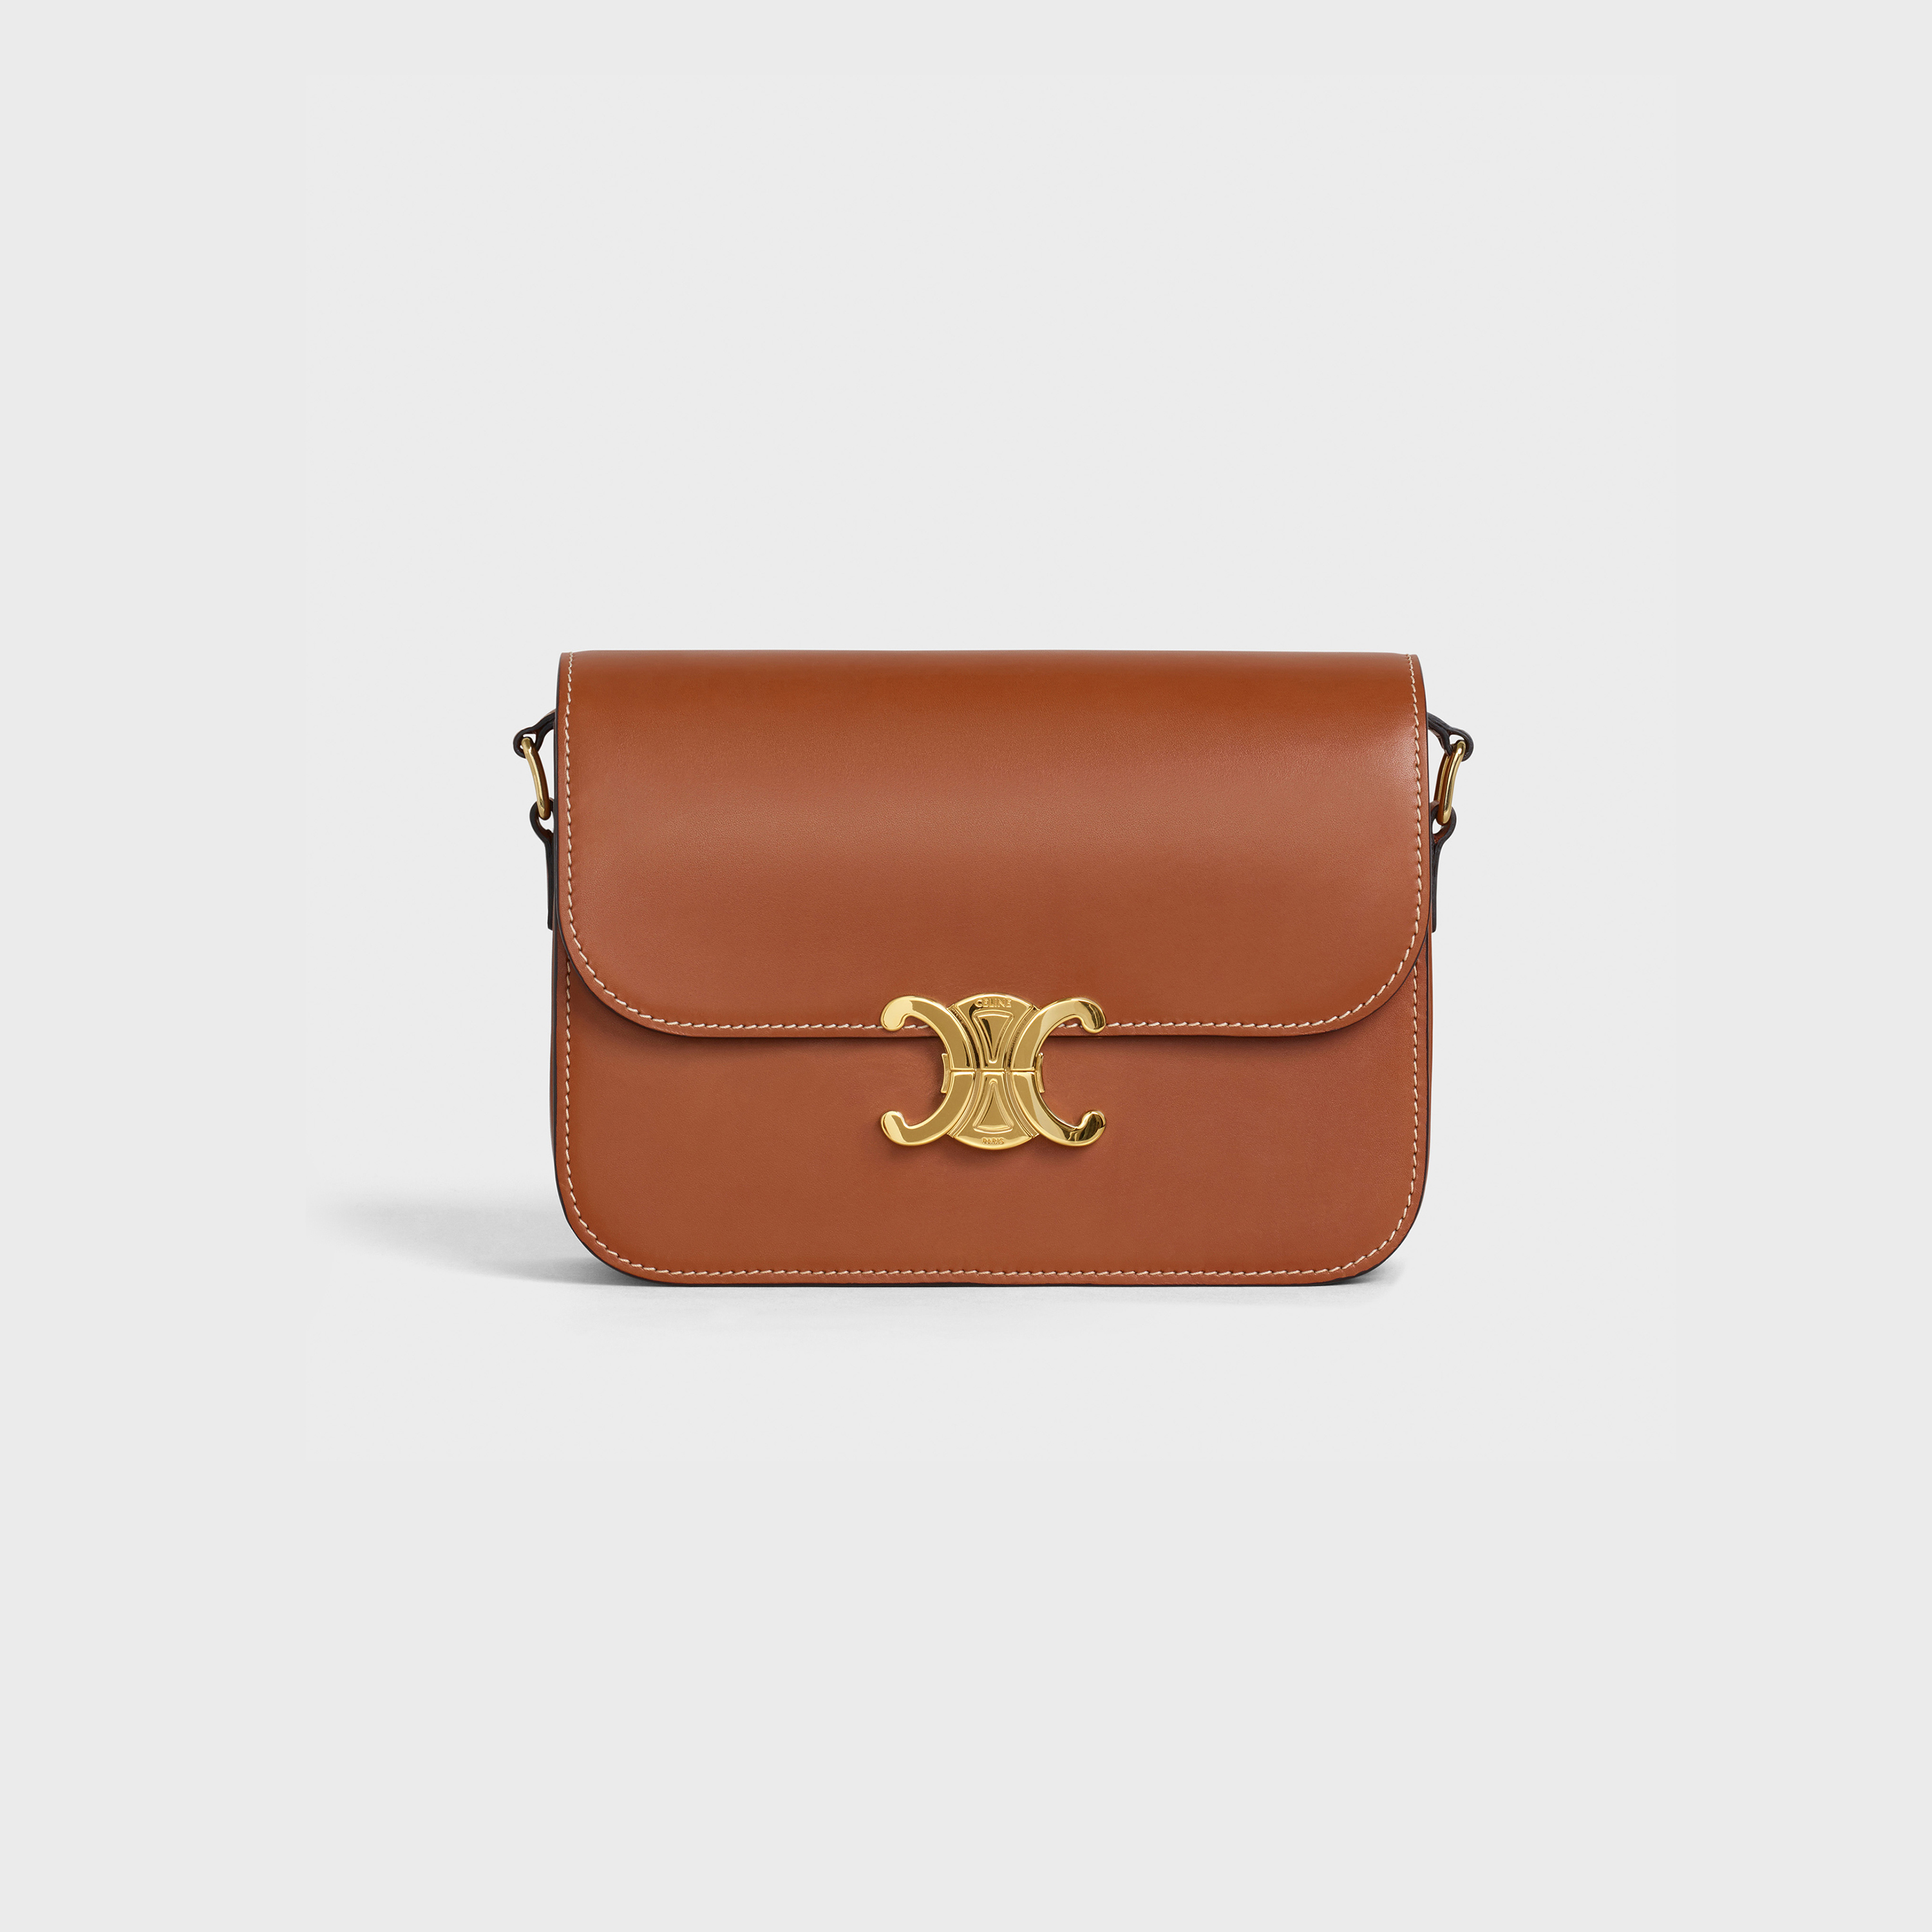 Medium Triomphe Bag in natural calfskin | CELINE